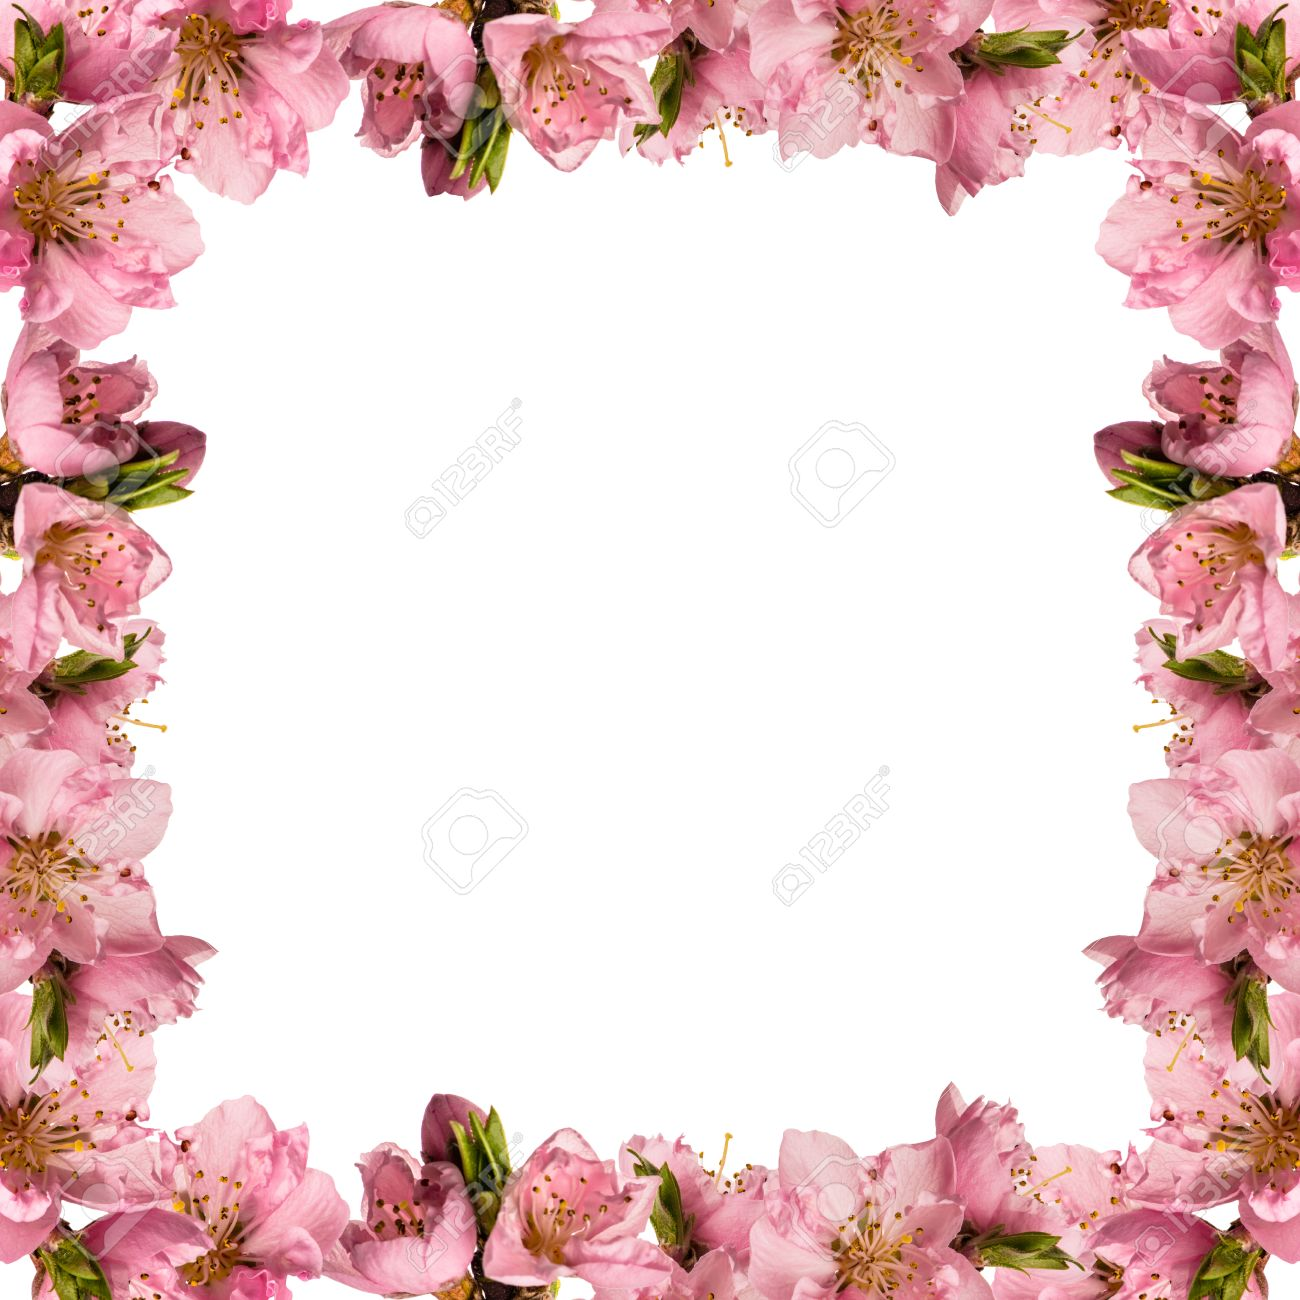 Beautiful Frame With Peach Flowers Stock Photo, Picture And Royalty ...